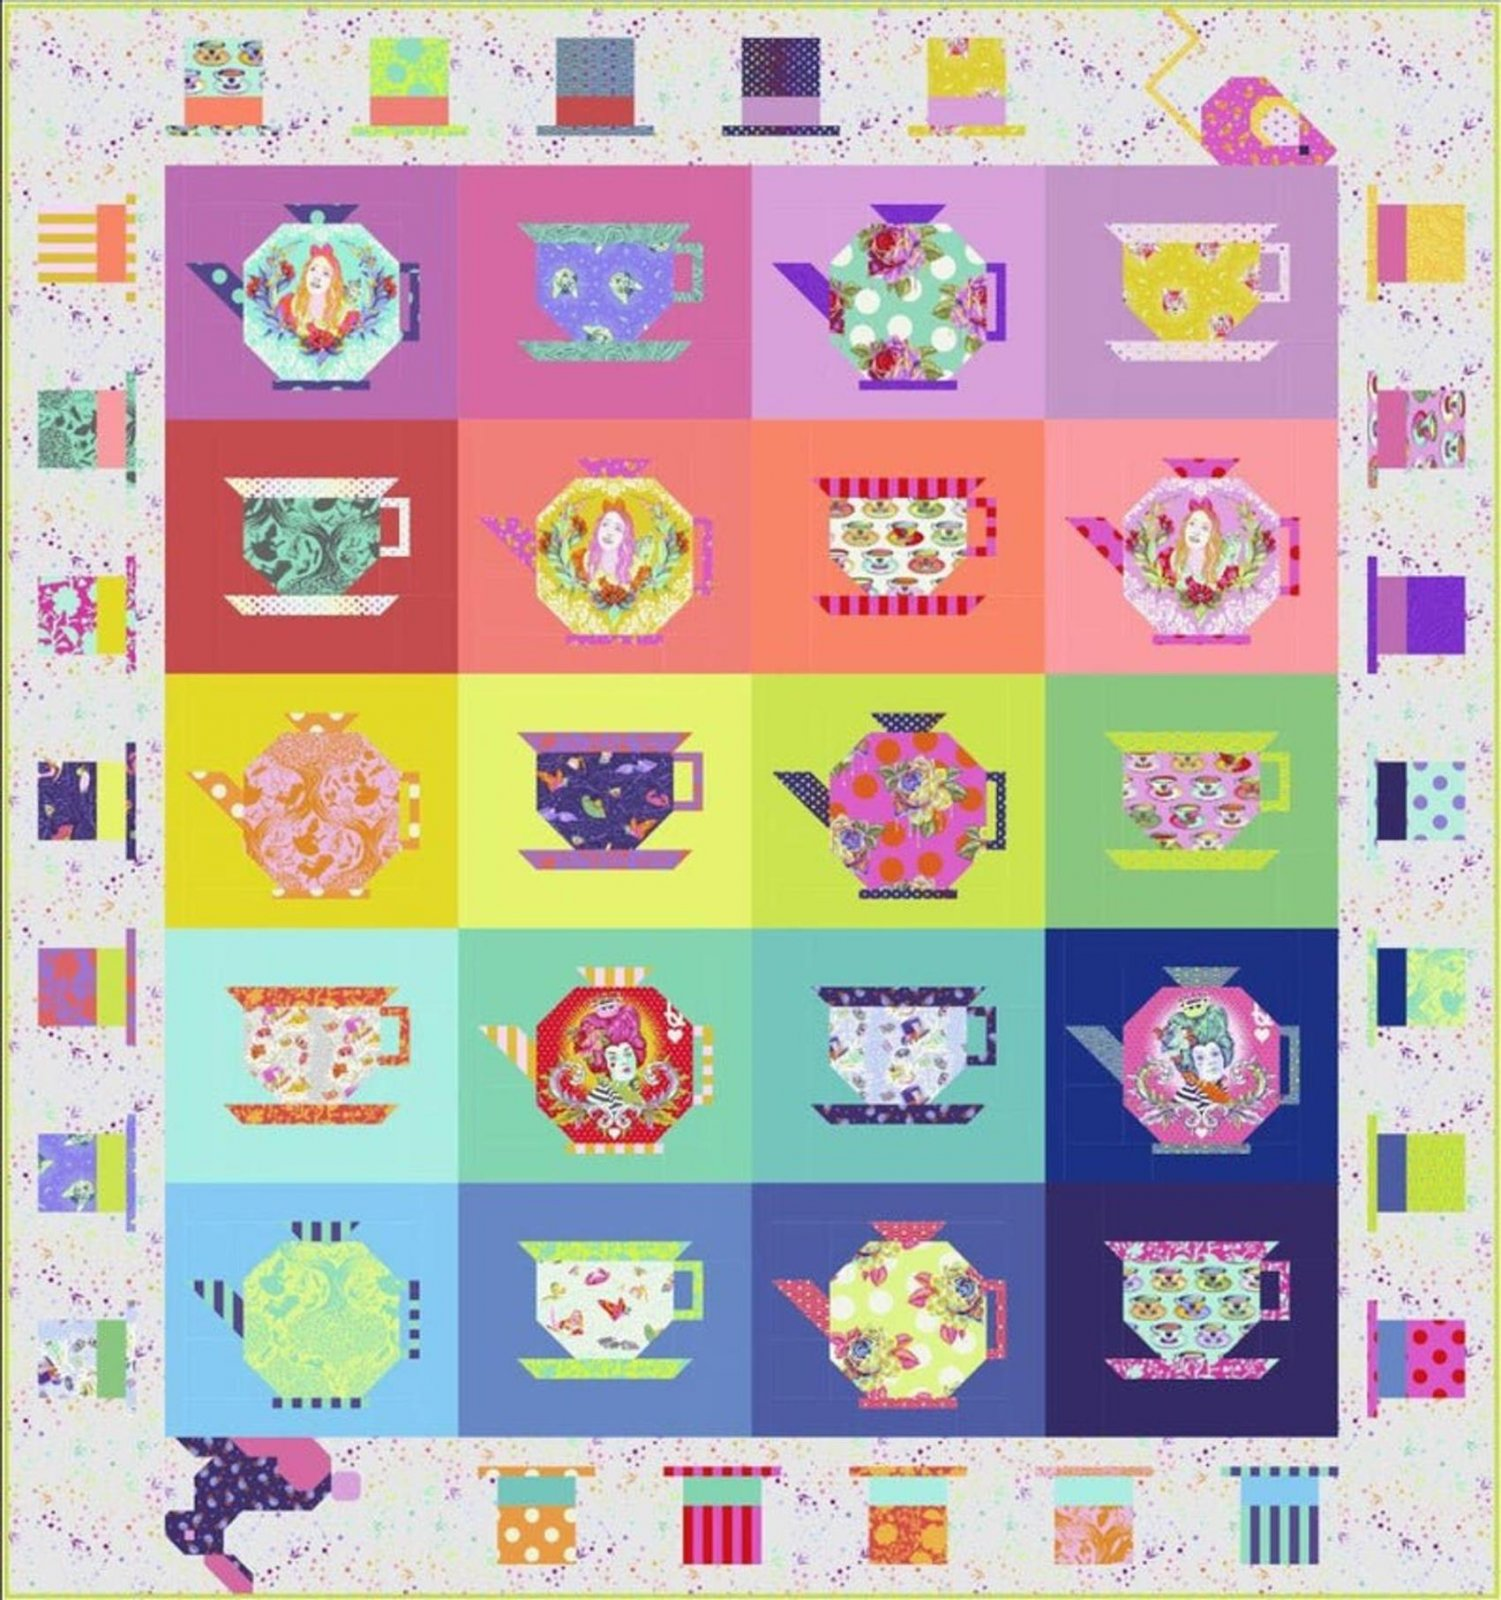 PRE-ORDER Tula Pink - Mad Hatter Tea Party Quilt Kit